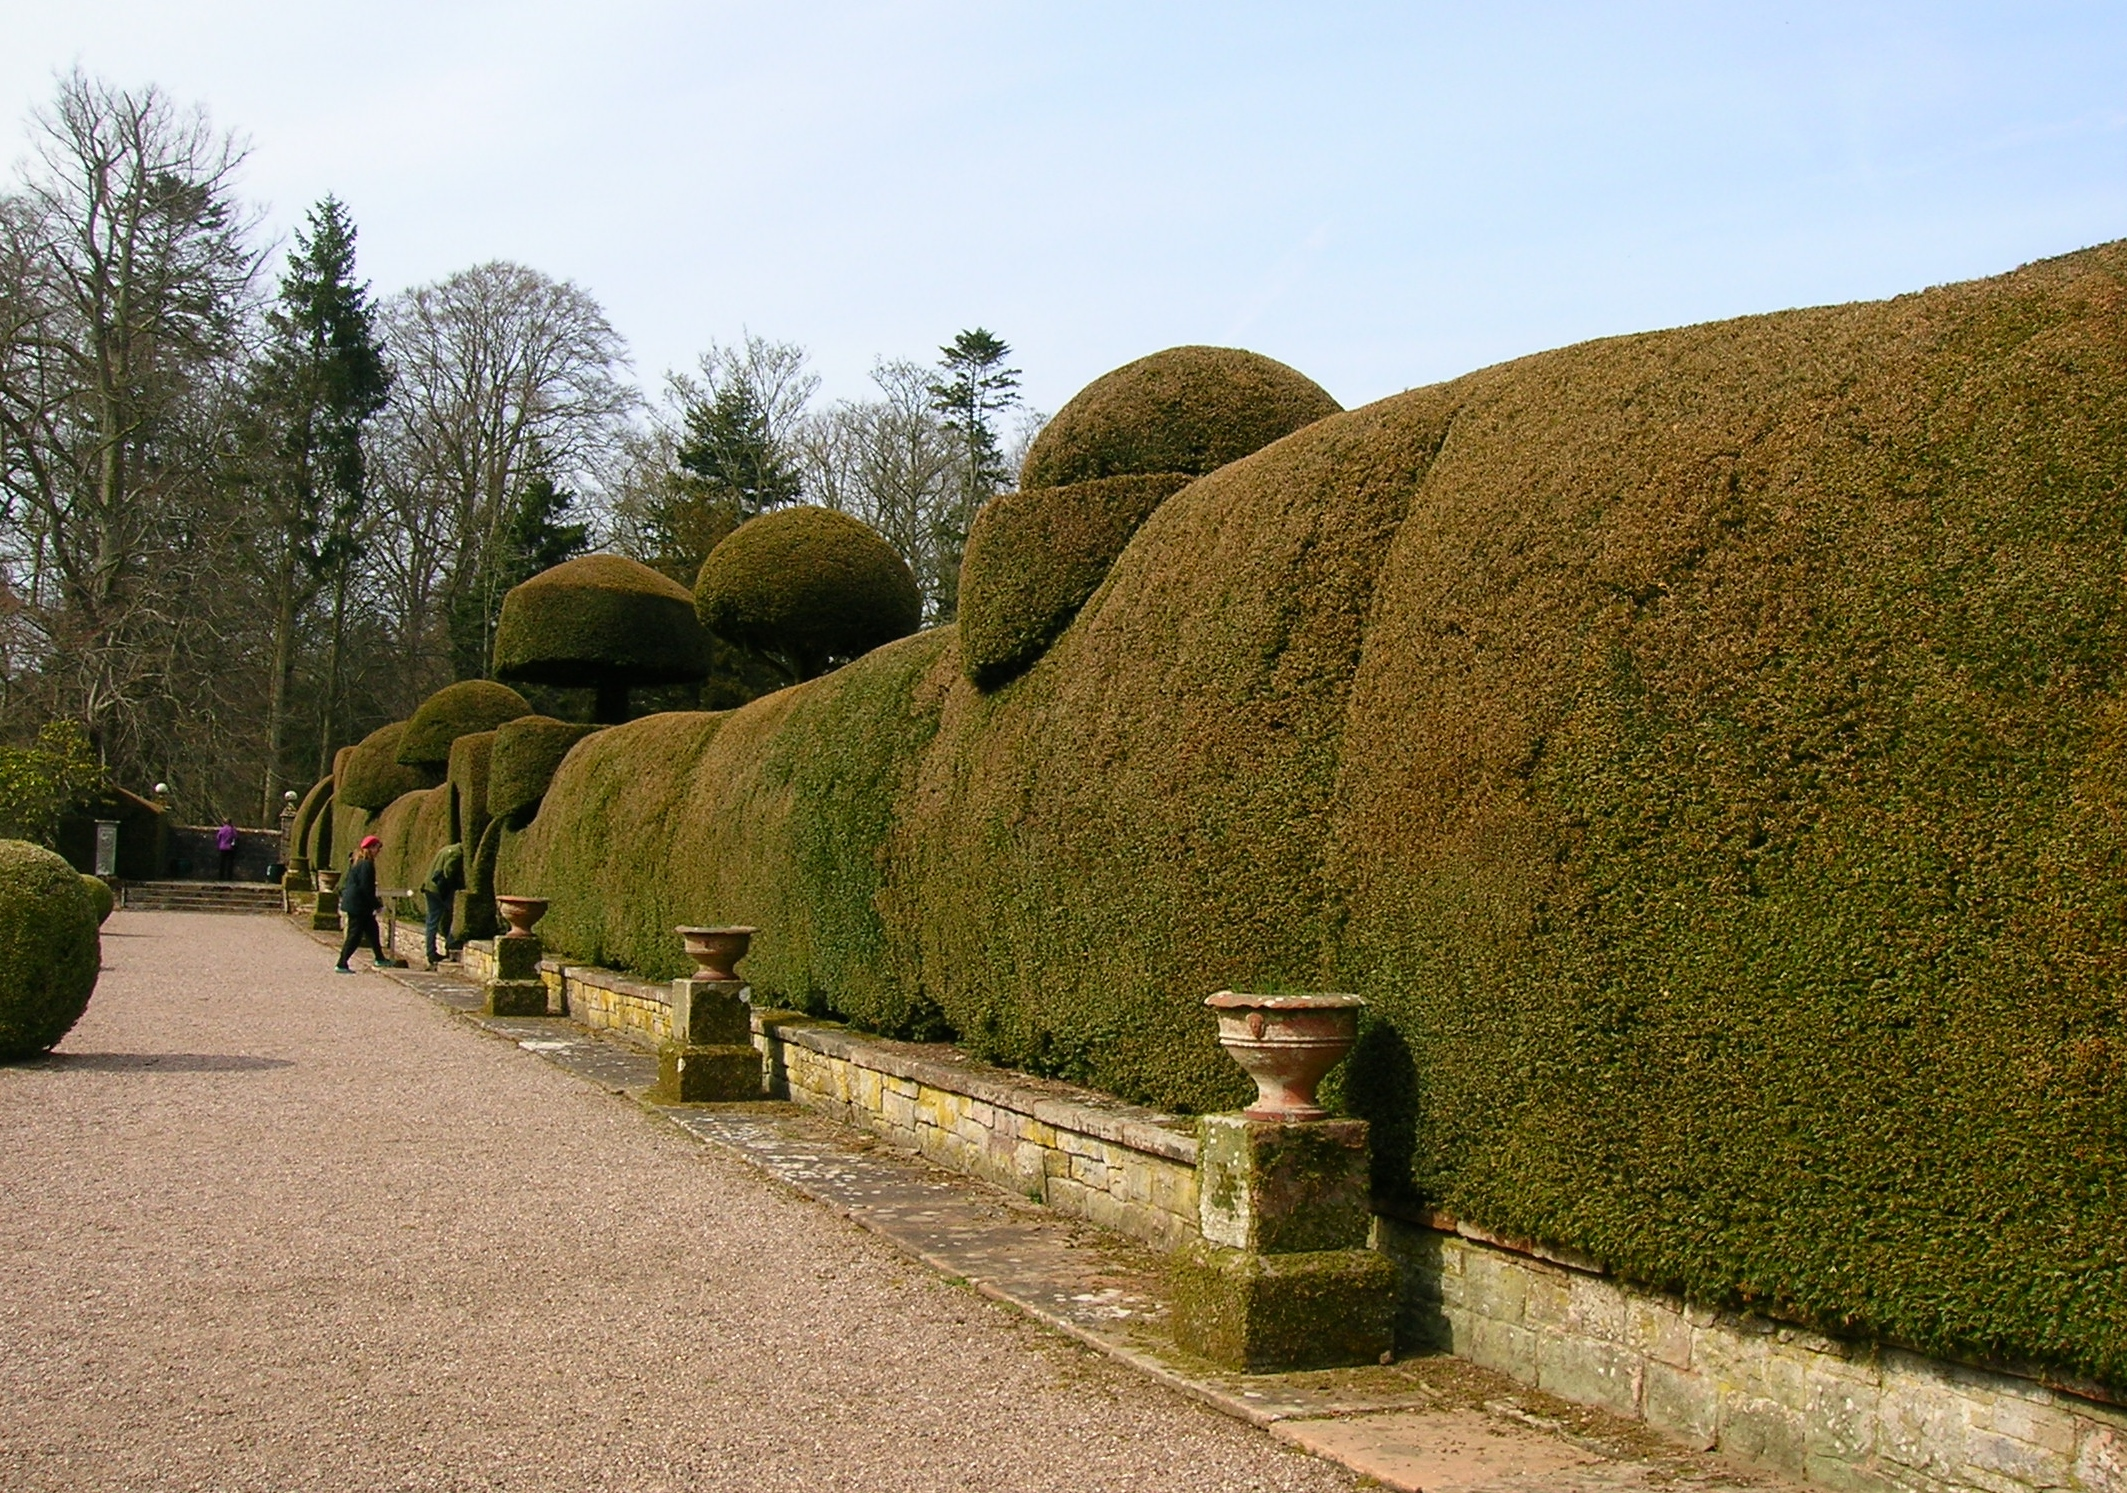 File:Hutton-in-the-Forest. Walled garden and topiary.JPG - Wikimedia ...